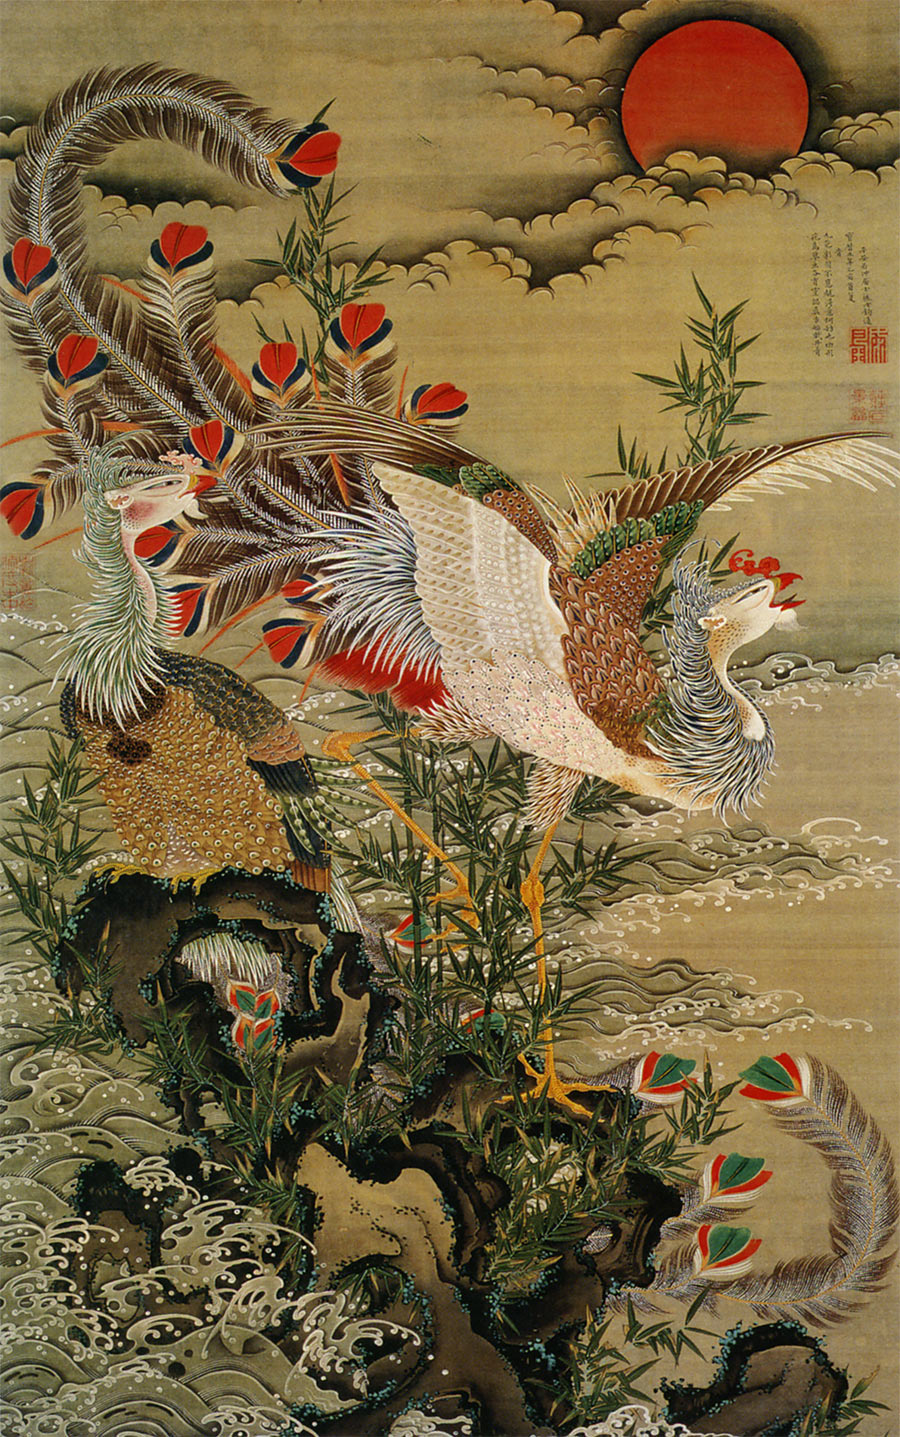 Gallery images and information  Japanese Rooster Art